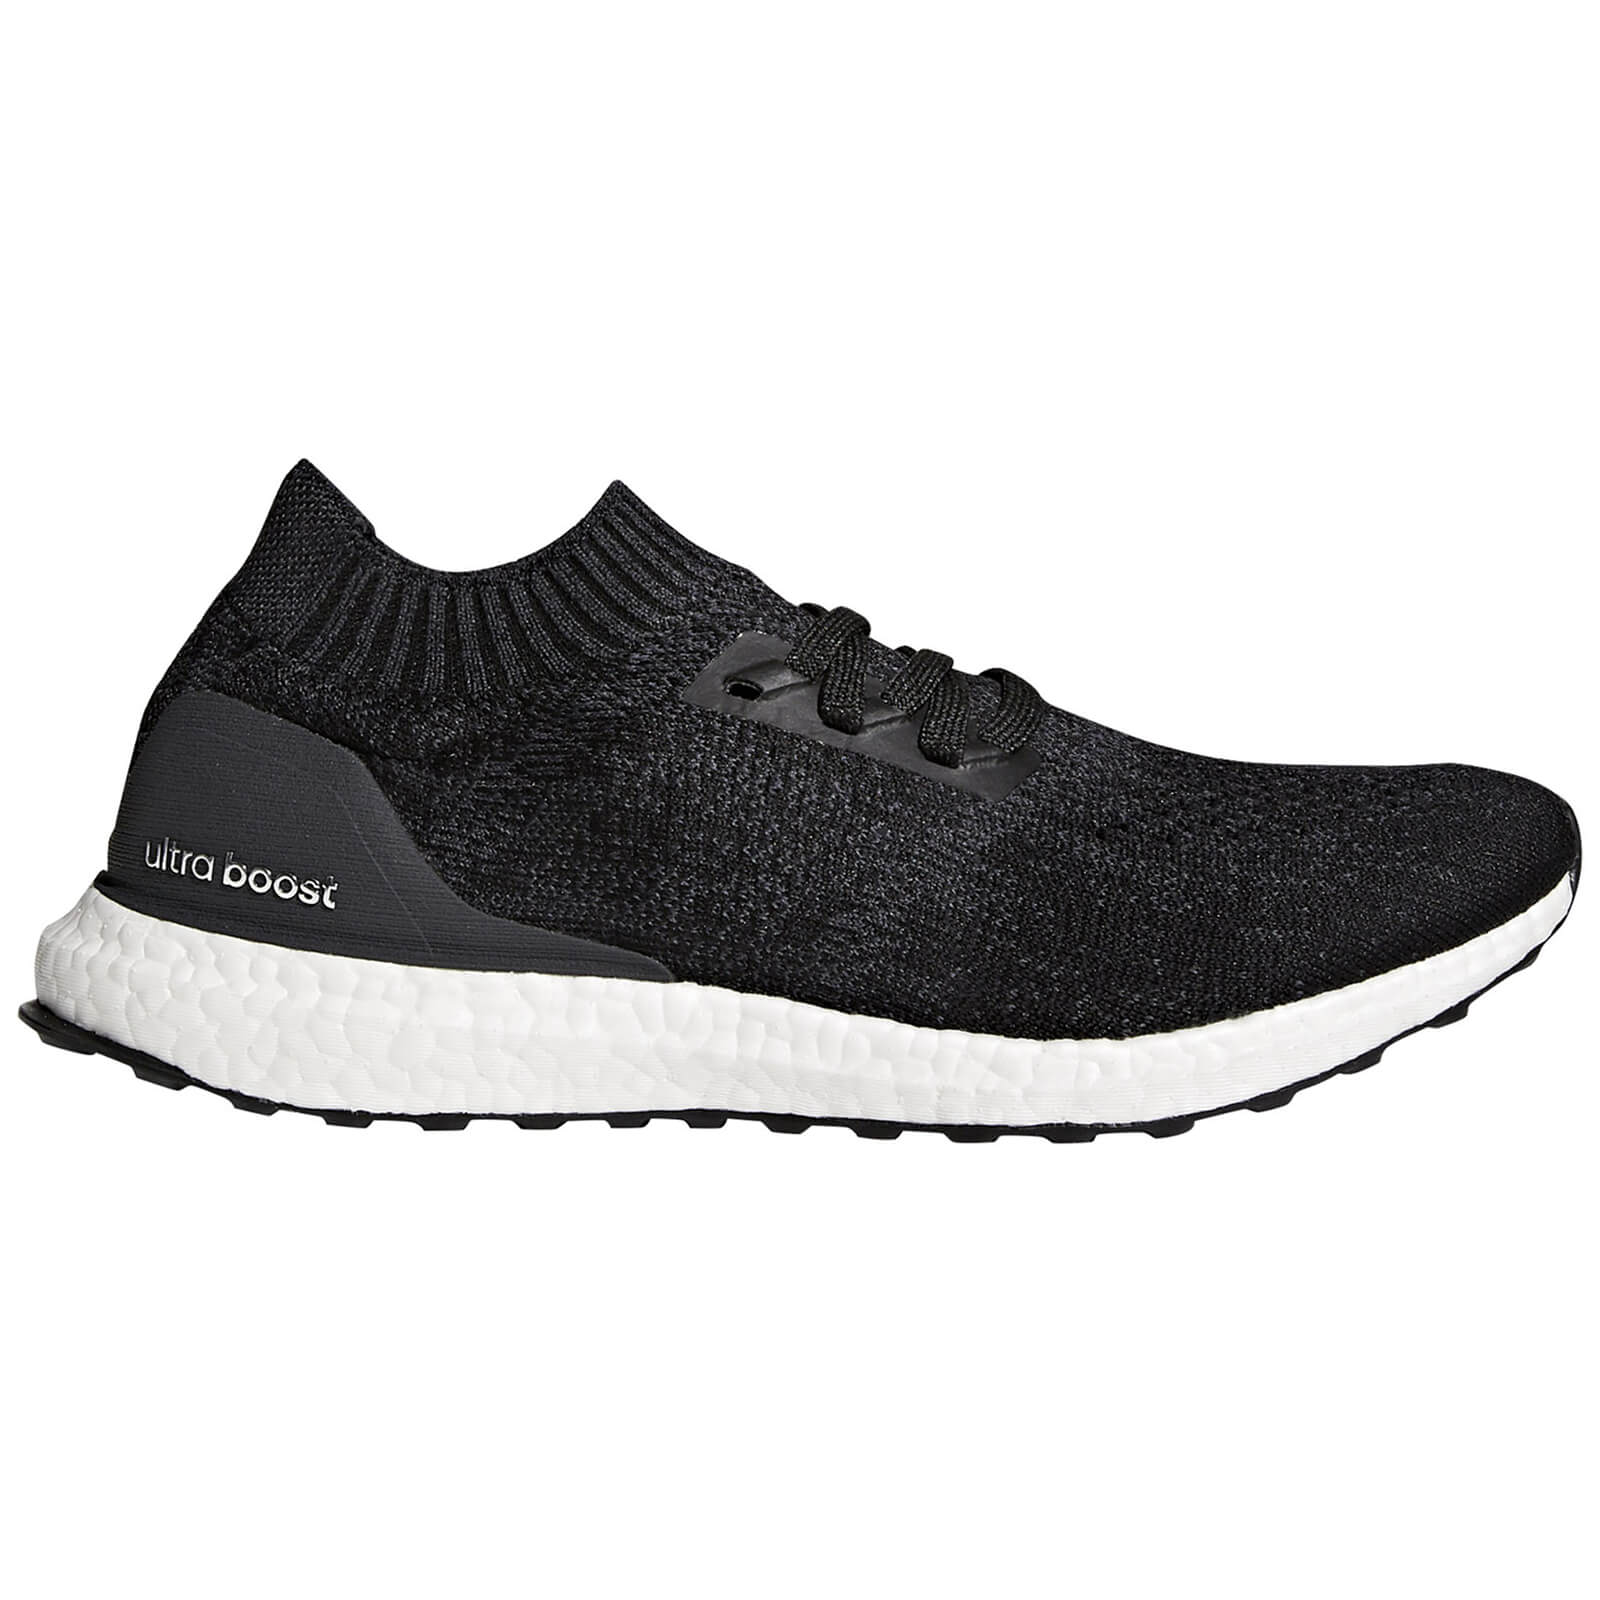 55b0bf2a2 adidas Men's Ultraboost Uncaged Running Shoes - Carbon/Black |  ProBikeKit.com